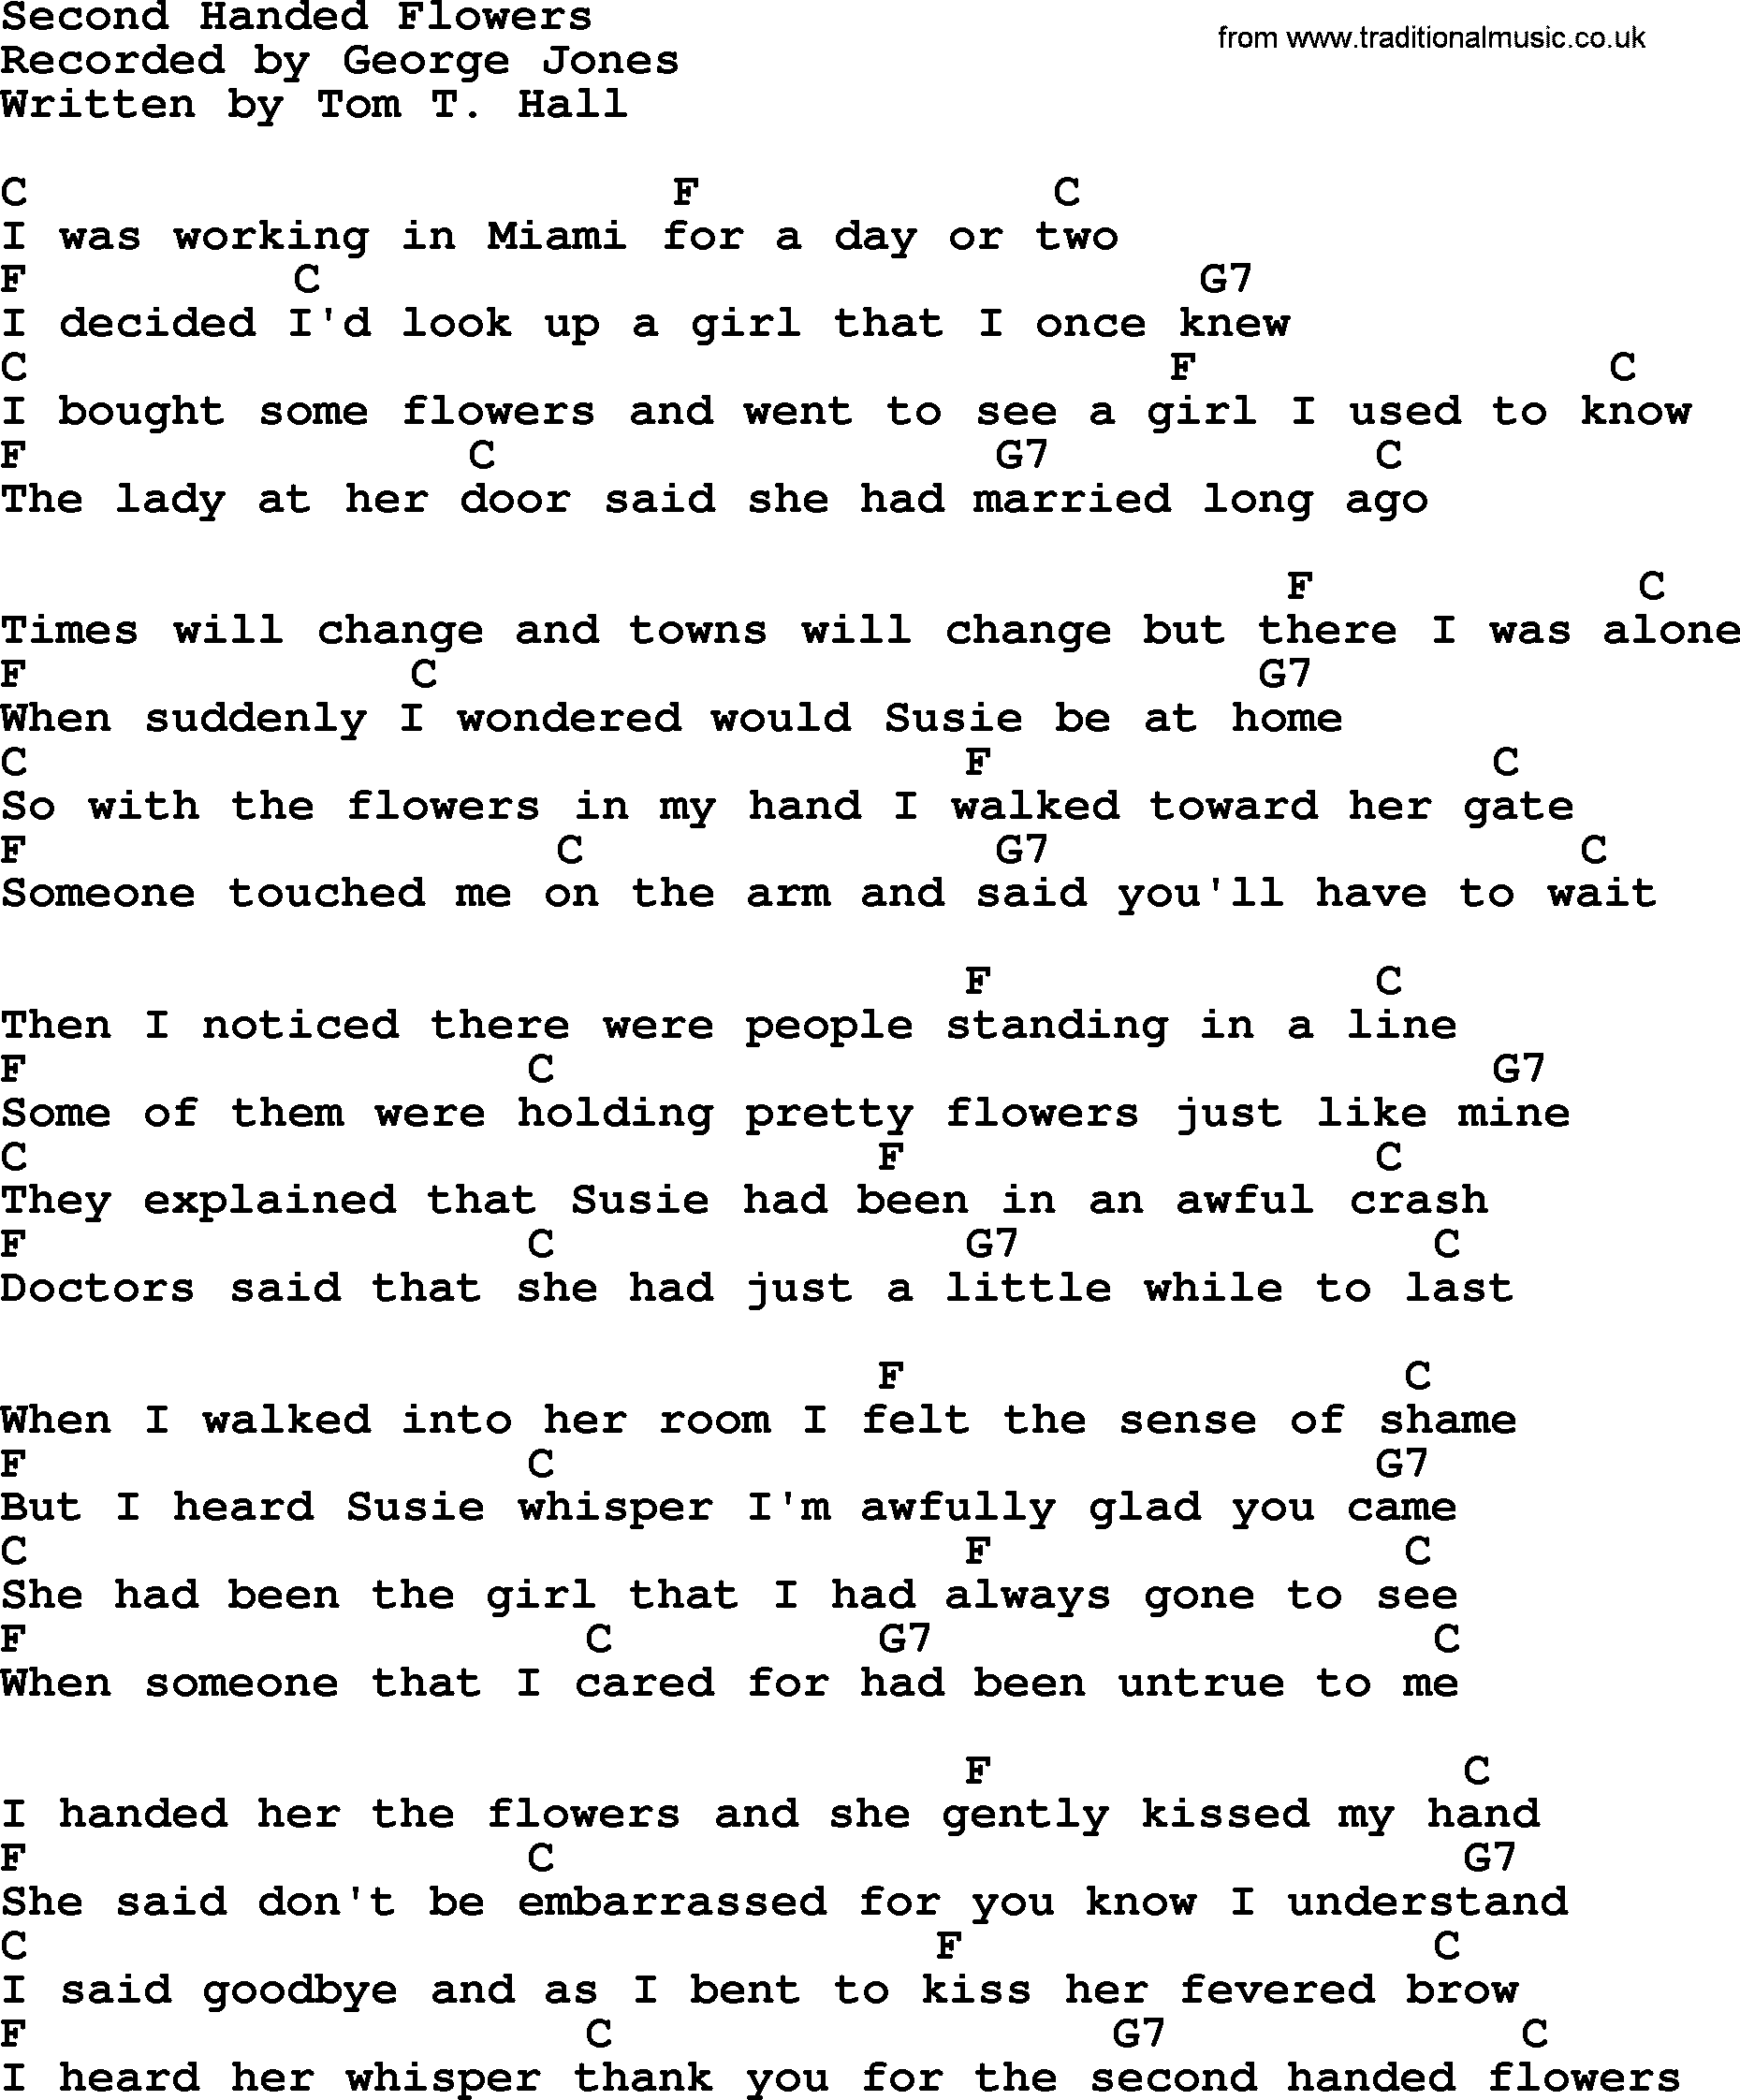 Second Handed Flowers By George Jones Counrty Song Lyrics And Chords